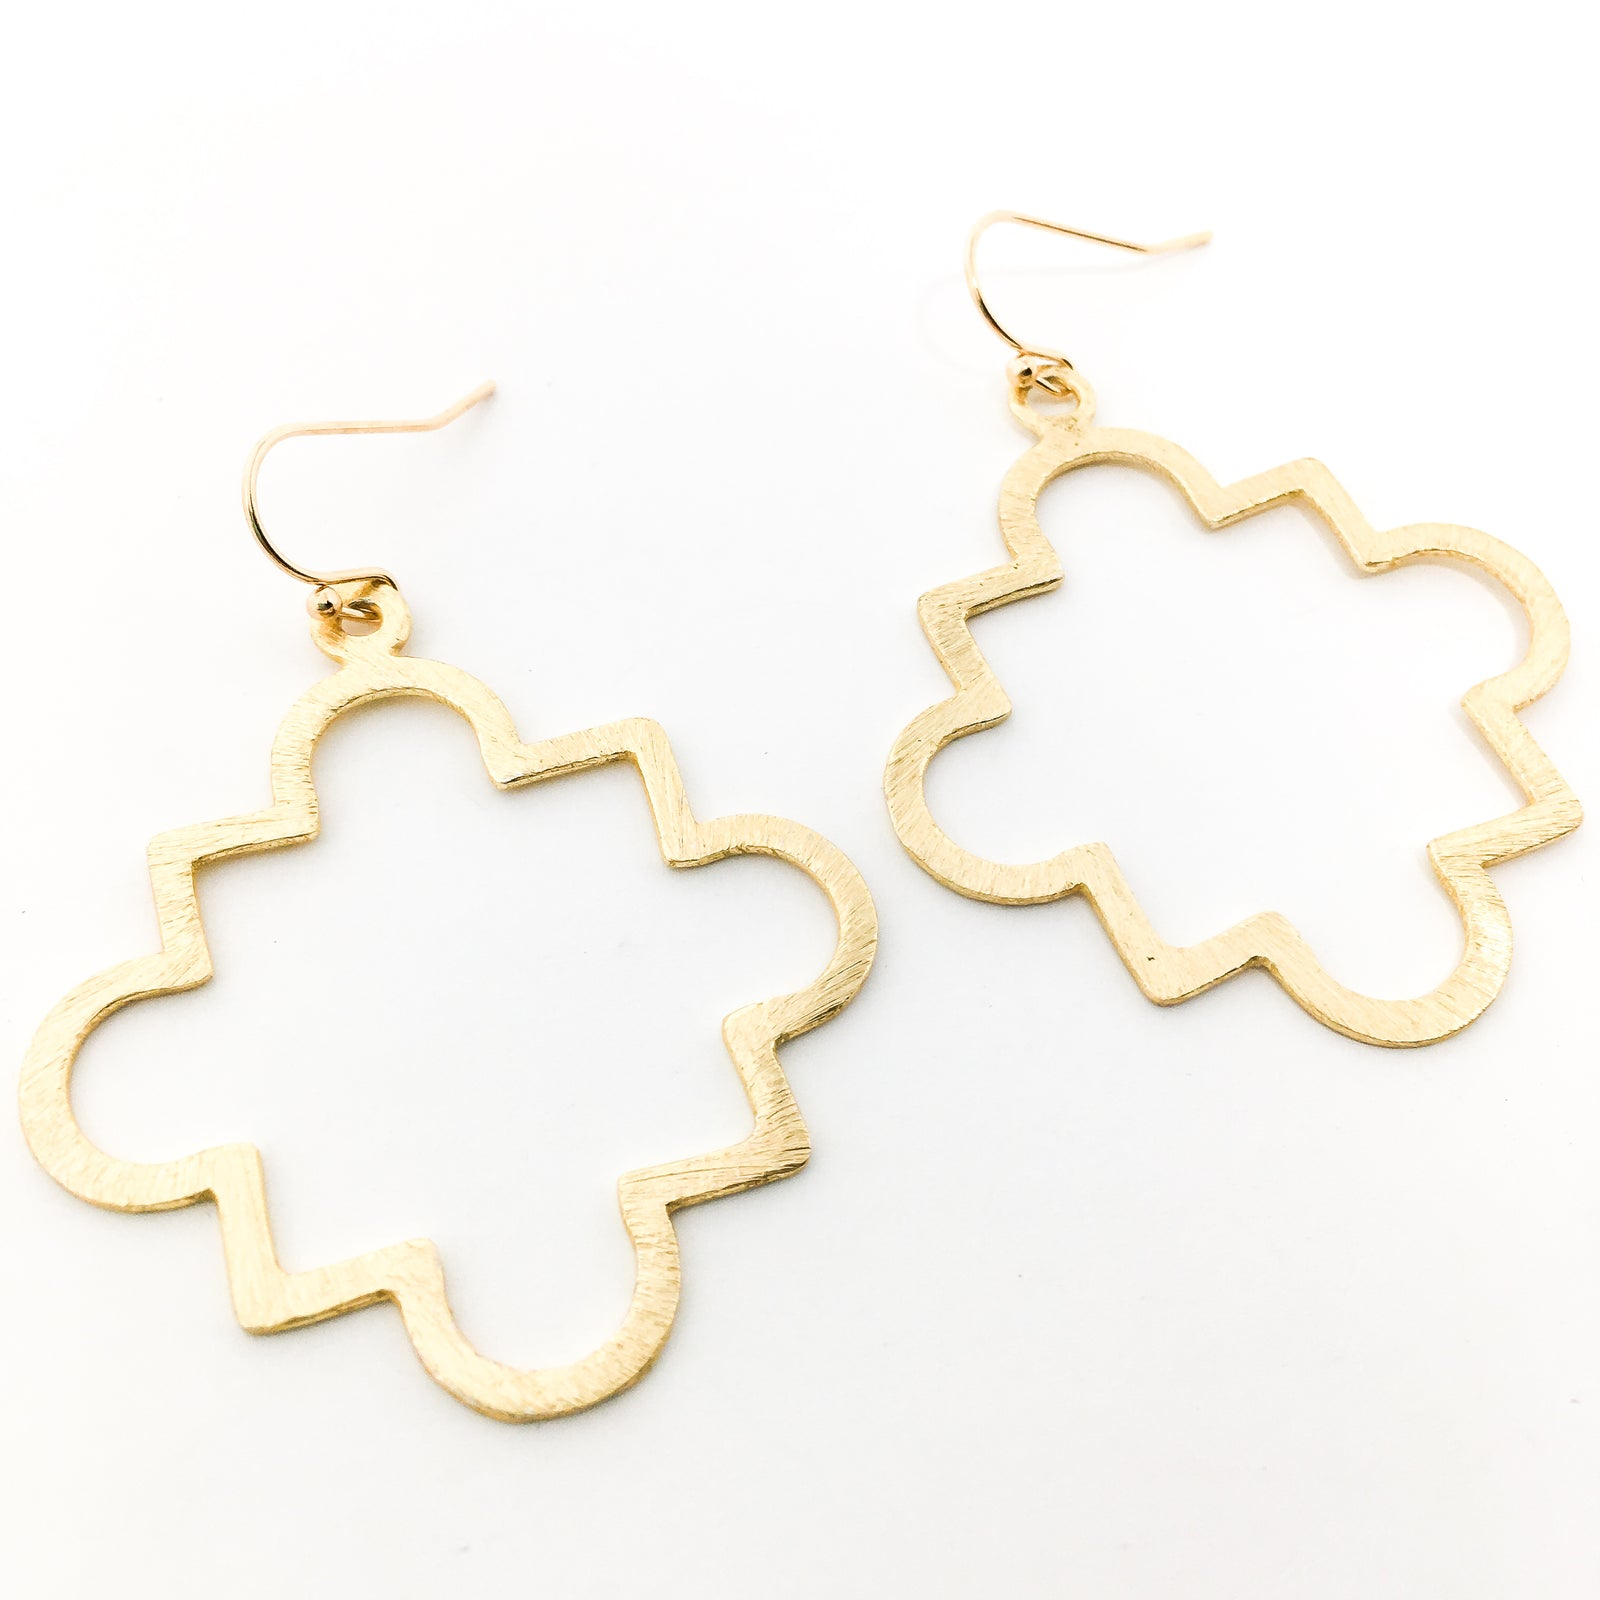 BRUSHED MILAN EARRINGS | 14K GOLD-FILLED